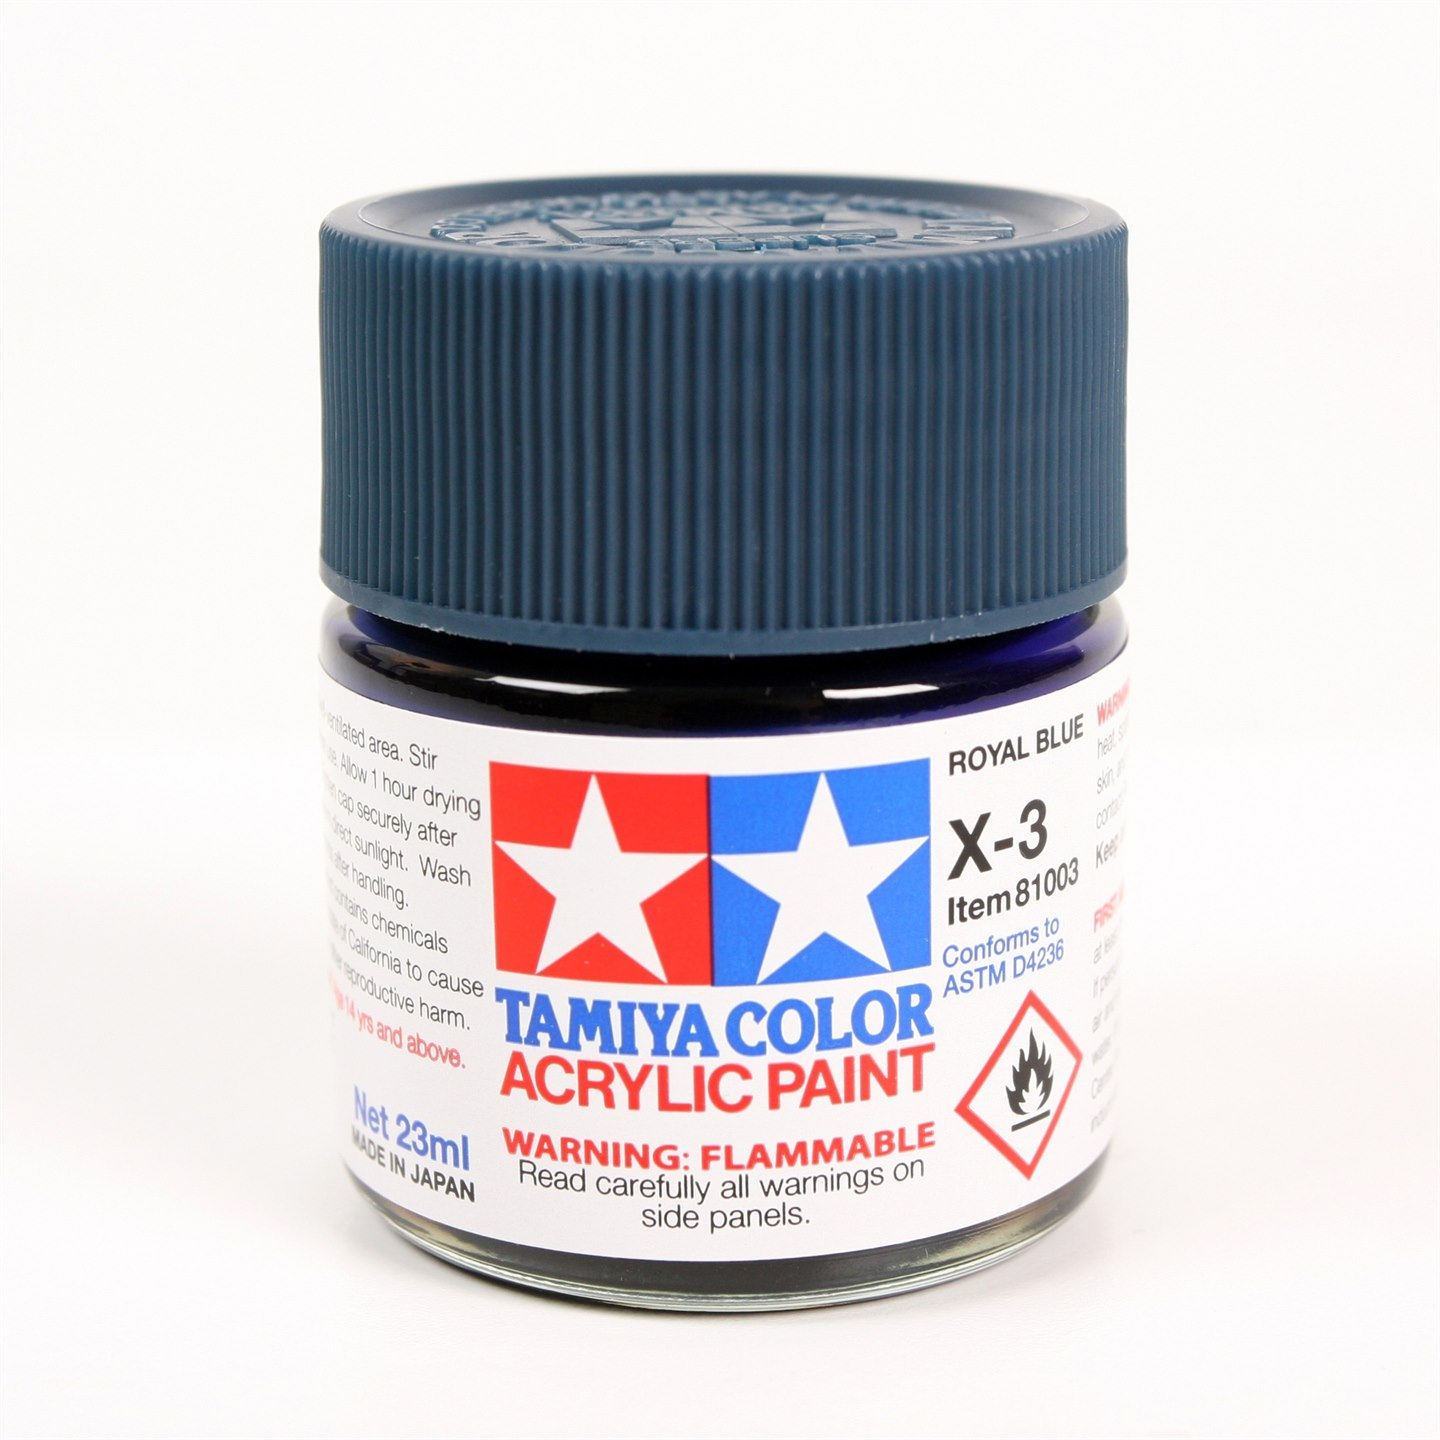 Tamiya Color Acrylic Paint X-03 (Royal Blue) (23ml)